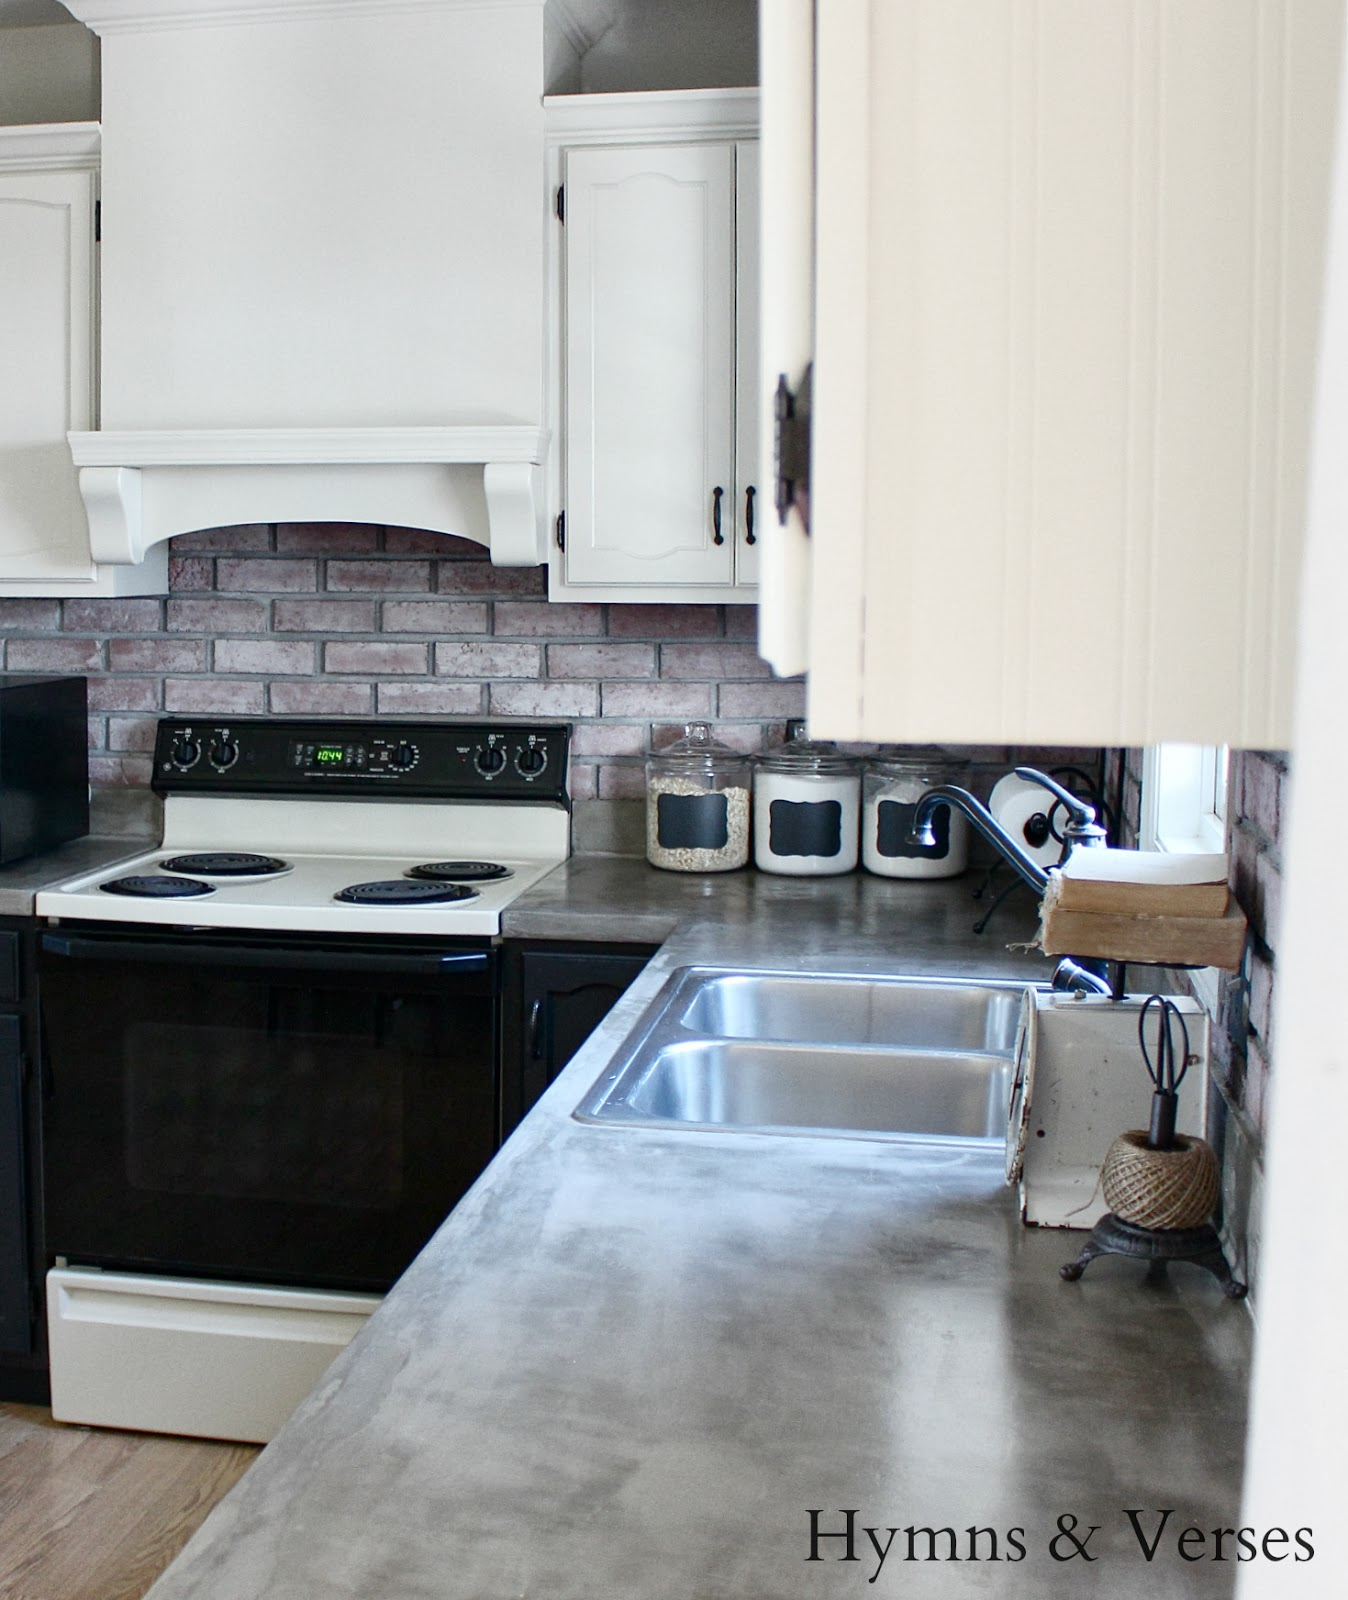 Hymns And Verses Diy Concrete Countertops Over Existing